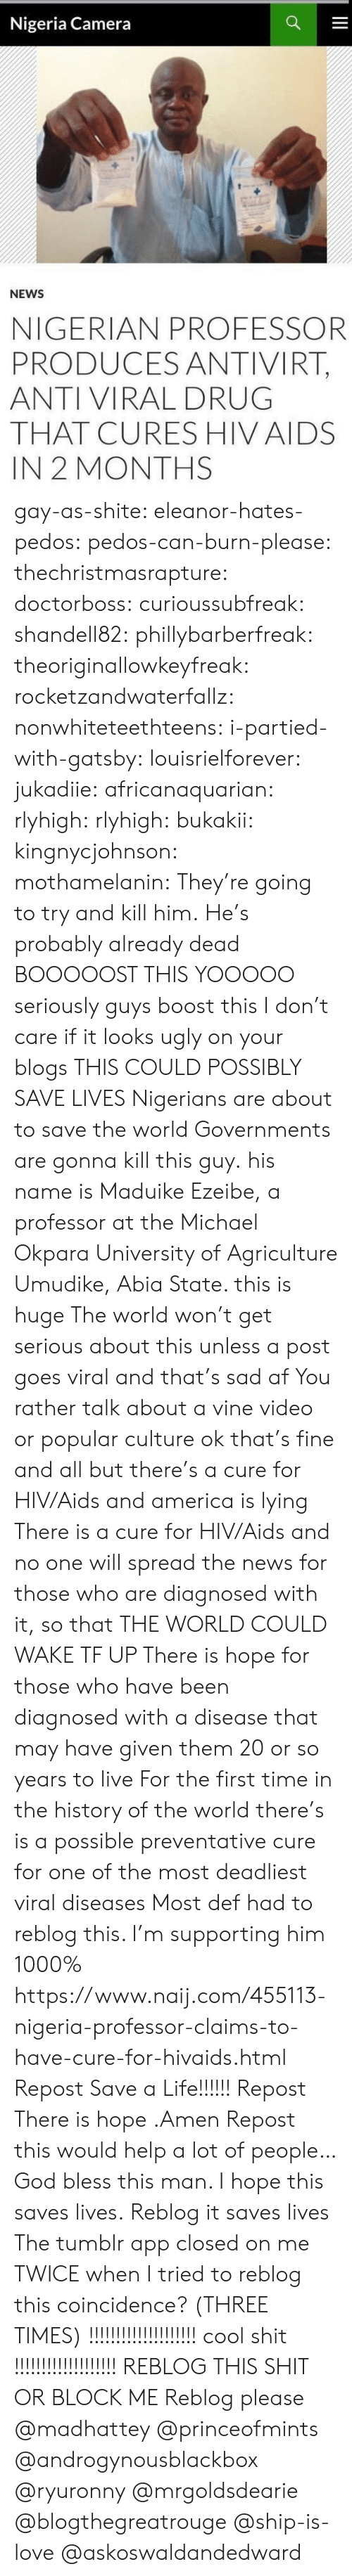 Yooooo: Nigeria Camera  NEWS  NIGERIAN PROFESSOR  PRODUCES ANTIVIRT,  ANTI VIRAL DRUG  THAT CURES HIV AIDS  IN 2 MONTHS gay-as-shite:  eleanor-hates-pedos:  pedos-can-burn-please:   thechristmasrapture:  doctorboss:  curioussubfreak:   shandell82:   phillybarberfreak:   theoriginallowkeyfreak:   rocketzandwaterfallz:   nonwhiteteethteens:  i-partied-with-gatsby:  louisrielforever:  jukadiie:  africanaquarian:  rlyhigh:  rlyhigh:  bukakii:  kingnycjohnson:  mothamelanin:  They're going to try and kill him.  He's probably already dead   BOOOOOST THIS  YOOOOO  seriously guys boost this I don't care if it looks ugly on your blogs THIS COULD POSSIBLY SAVE LIVES  Nigerians are about to save the world    Governments are gonna kill this guy.  his name is Maduike Ezeibe, a professor at the Michael Okpara University of Agriculture Umudike, Abia State. this is huge  The world won't get serious about this unless a post goes viral and that's sad af You rather talk about a vine video or popular culture ok that's fine and all but there's a cure for HIV/Aids and america is lying There is a cure for HIV/Aids and no one will spread the news for those who are diagnosed with it, so that THE WORLD COULD WAKE TF UP There is hope for those who have been diagnosed with a disease that may have given them 20 or so years to live For the first time in the history of the world there's is a possible preventative cure for one of the most deadliest viral diseases   Most def had to reblog this. I'm supporting him 1000%   https://www.naij.com/455113-nigeria-professor-claims-to-have-cure-for-hivaids.html   Repost  Save a Life!!!!!! Repost   There is hope .Amen Repost this would help a lot  of people…   God bless this man. I hope this saves lives.   Reblog it saves lives   The tumblr app closed on me TWICE when I tried to reblog this  coincidence? (THREE TIMES)  !!!!!!!!!!!!!!!!!!!! cool shit !!!!!!!!!!!!!!!!!!!   REBLOG THIS SHIT OR BLOCK ME  Reblog please @madhattey @princeofmints @androgynousblackb